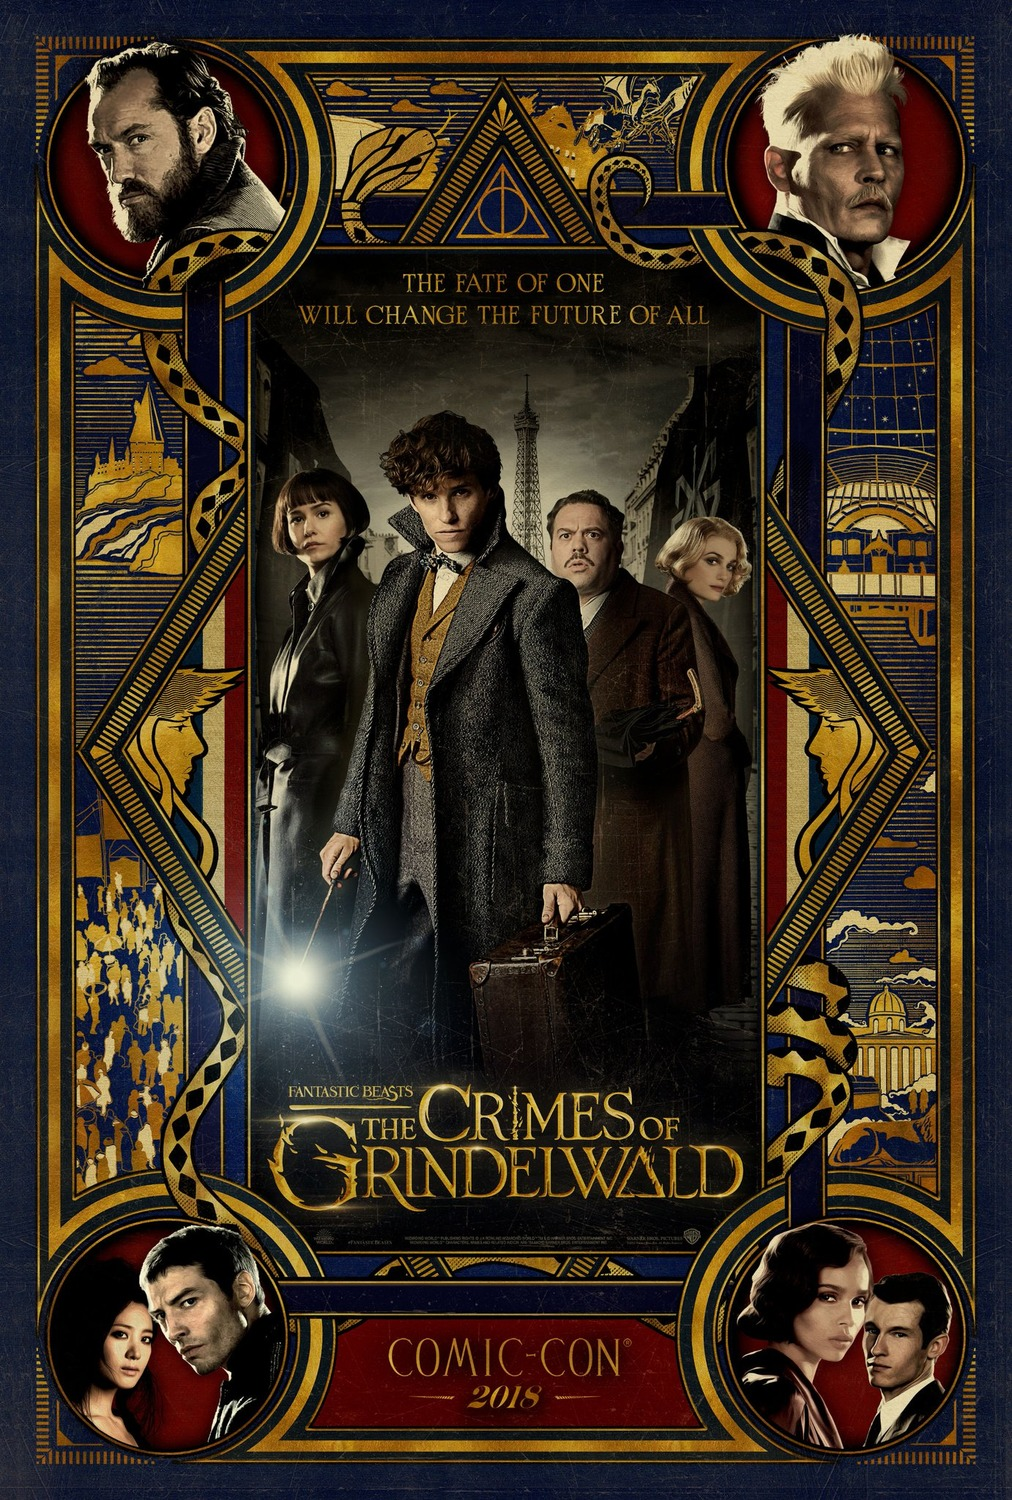 Film : Fantastic Beasts - The Crimes of Grindelwald (2018)